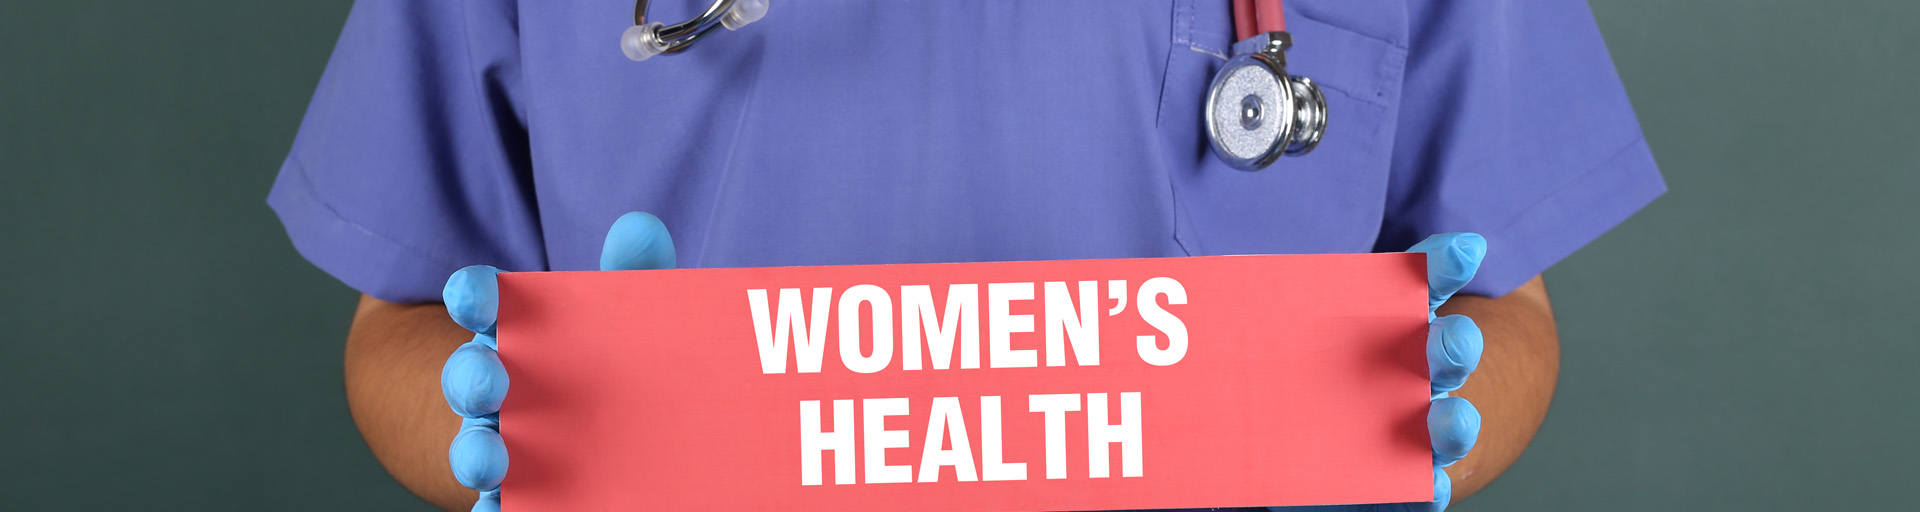 Savannah ObGyn - Women's Health Services